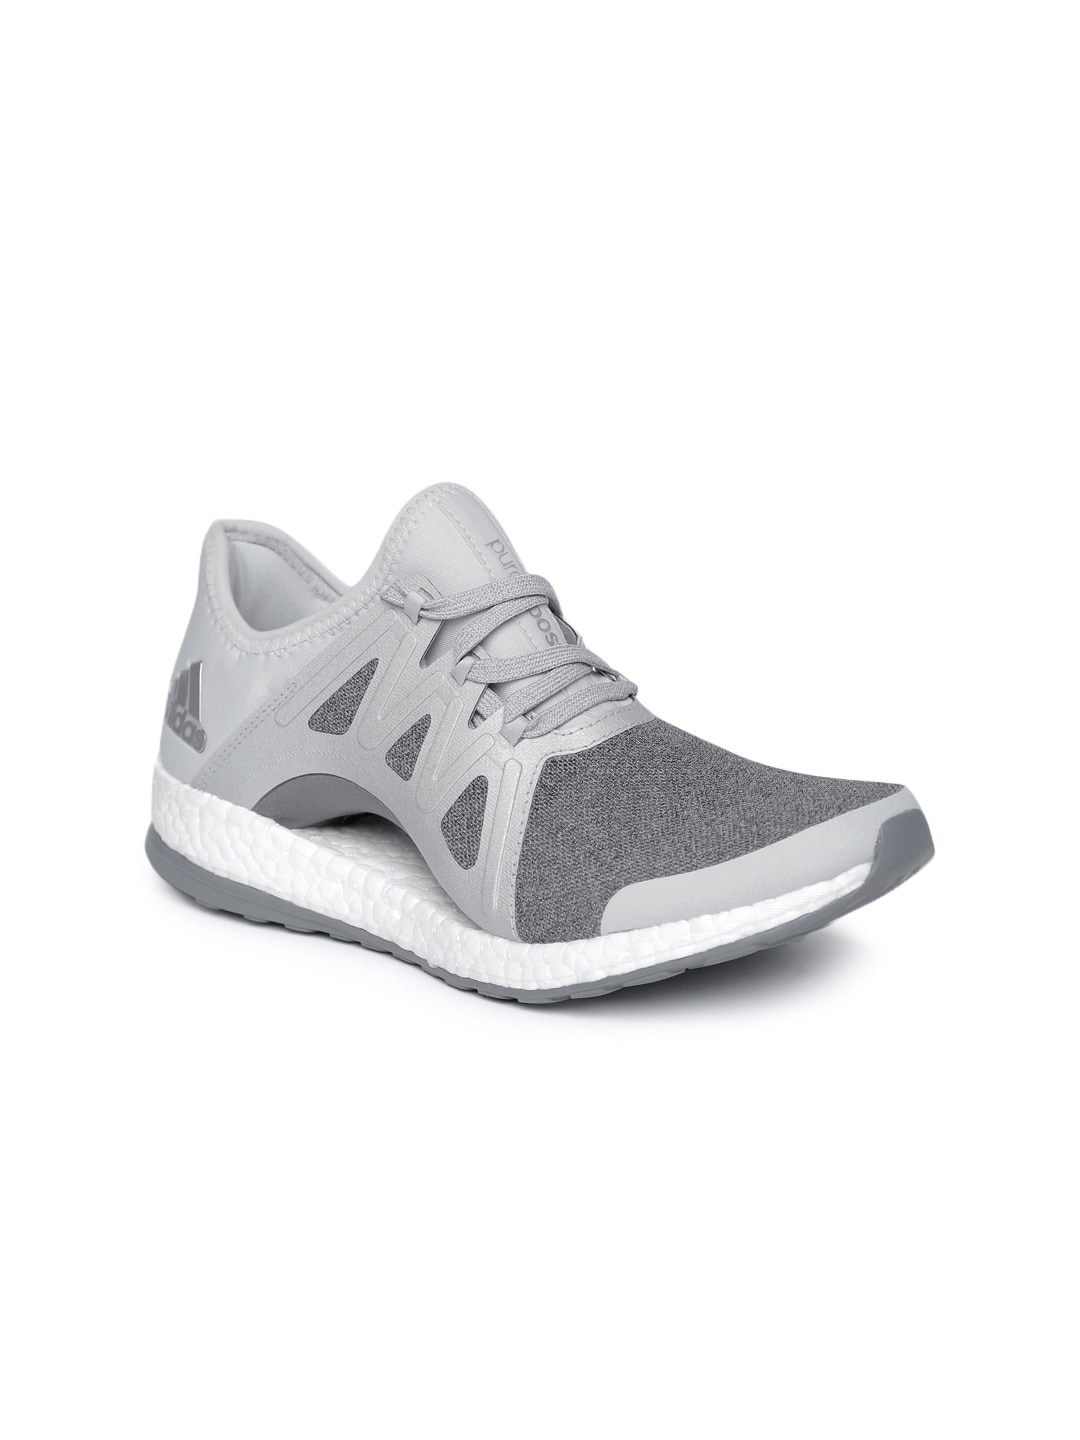 9f75e7f05e869a Adidas bb1734 Women Grey Pureboost Xpose Running Shoes- Price in India